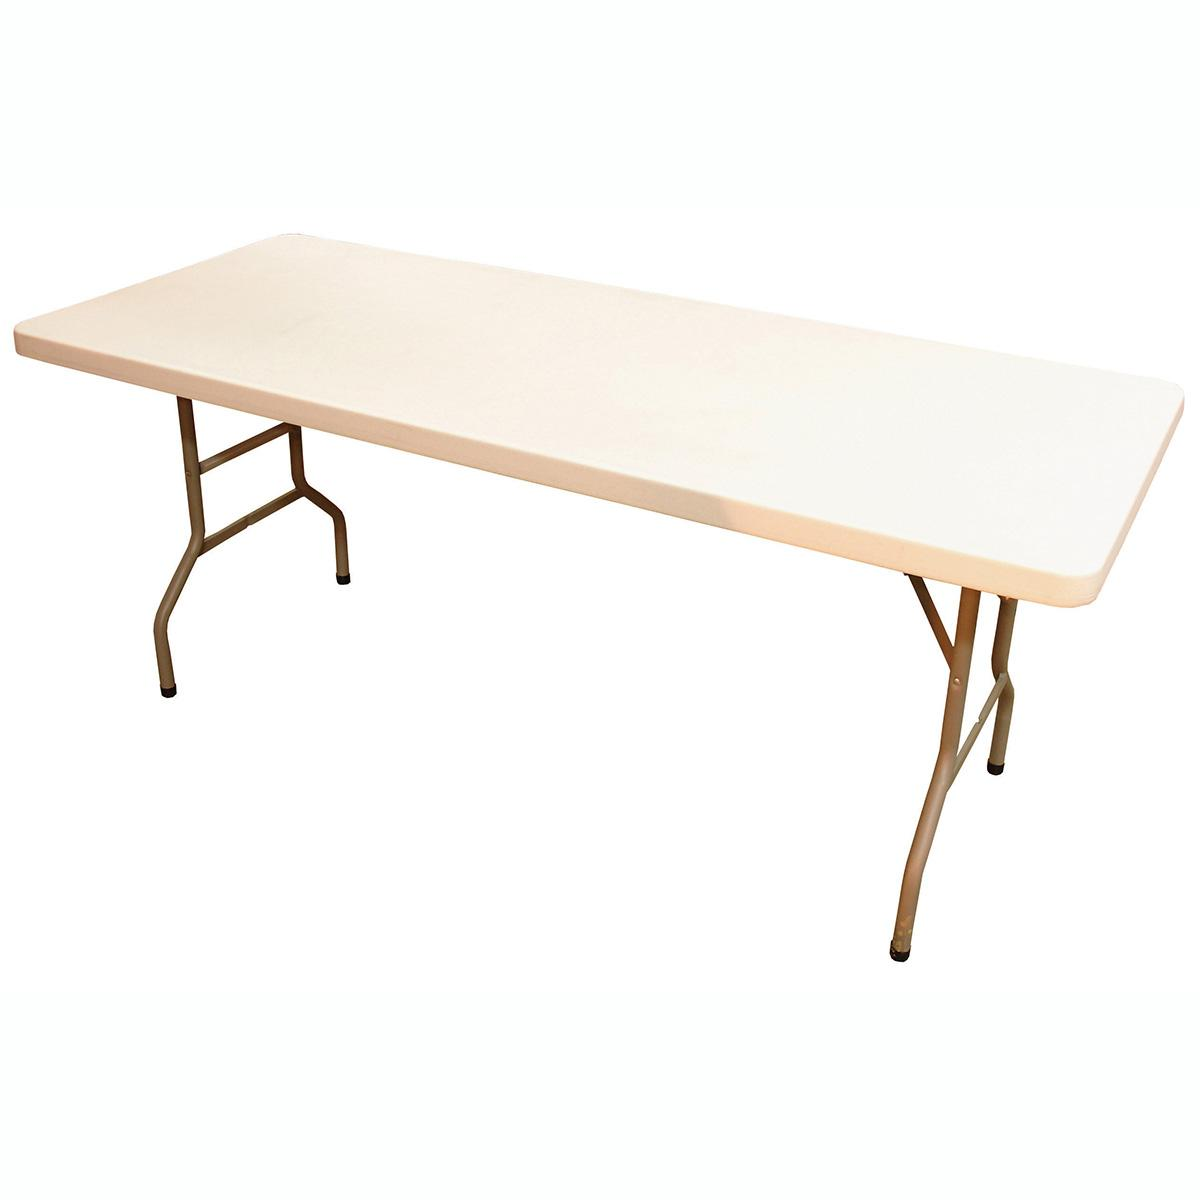 FOLDING EVENT TABLE (YCZ-183 6FT)